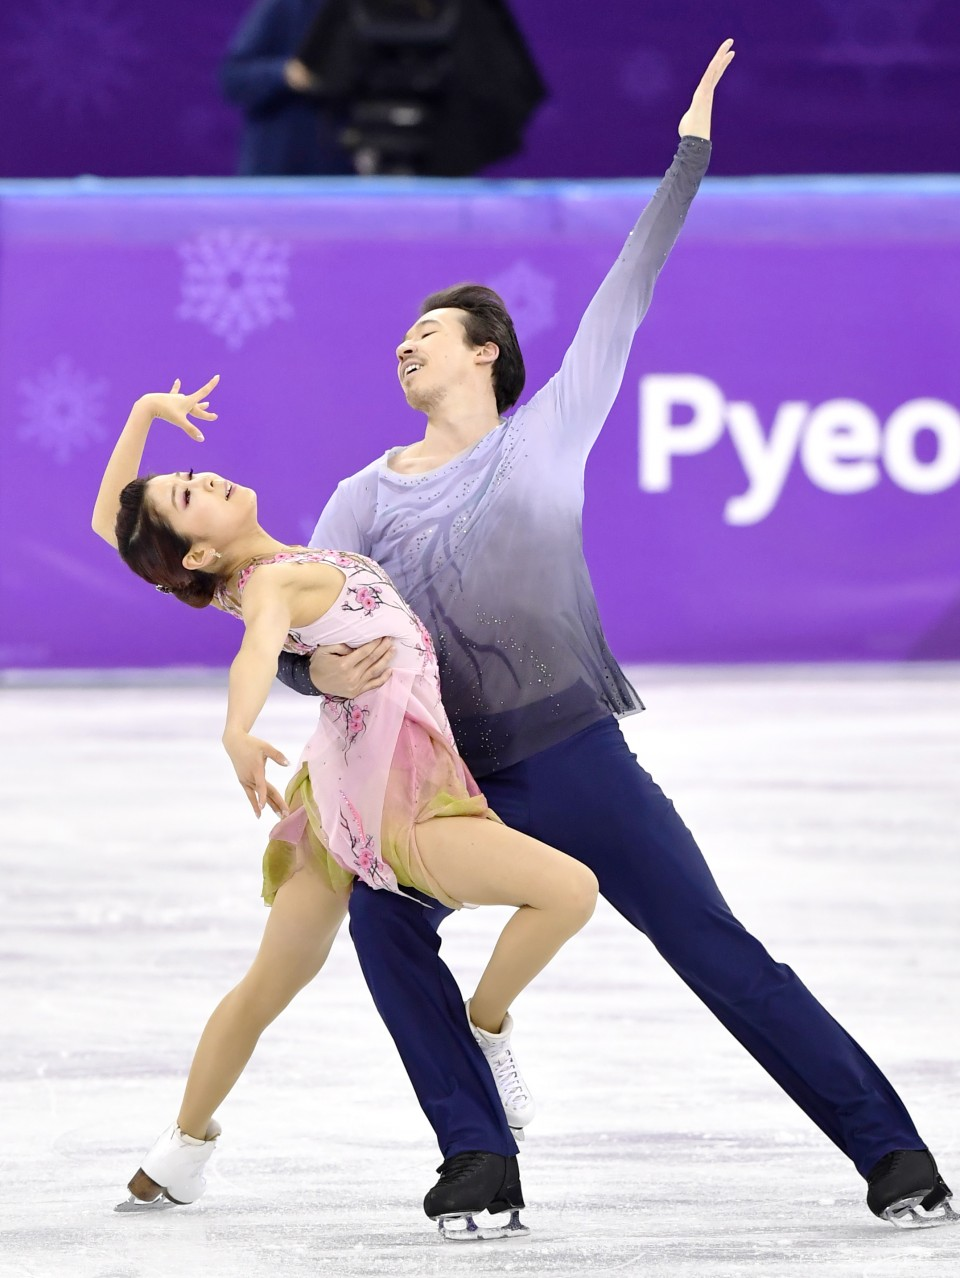 Image result for muramoto reed ice dance pyeongchang